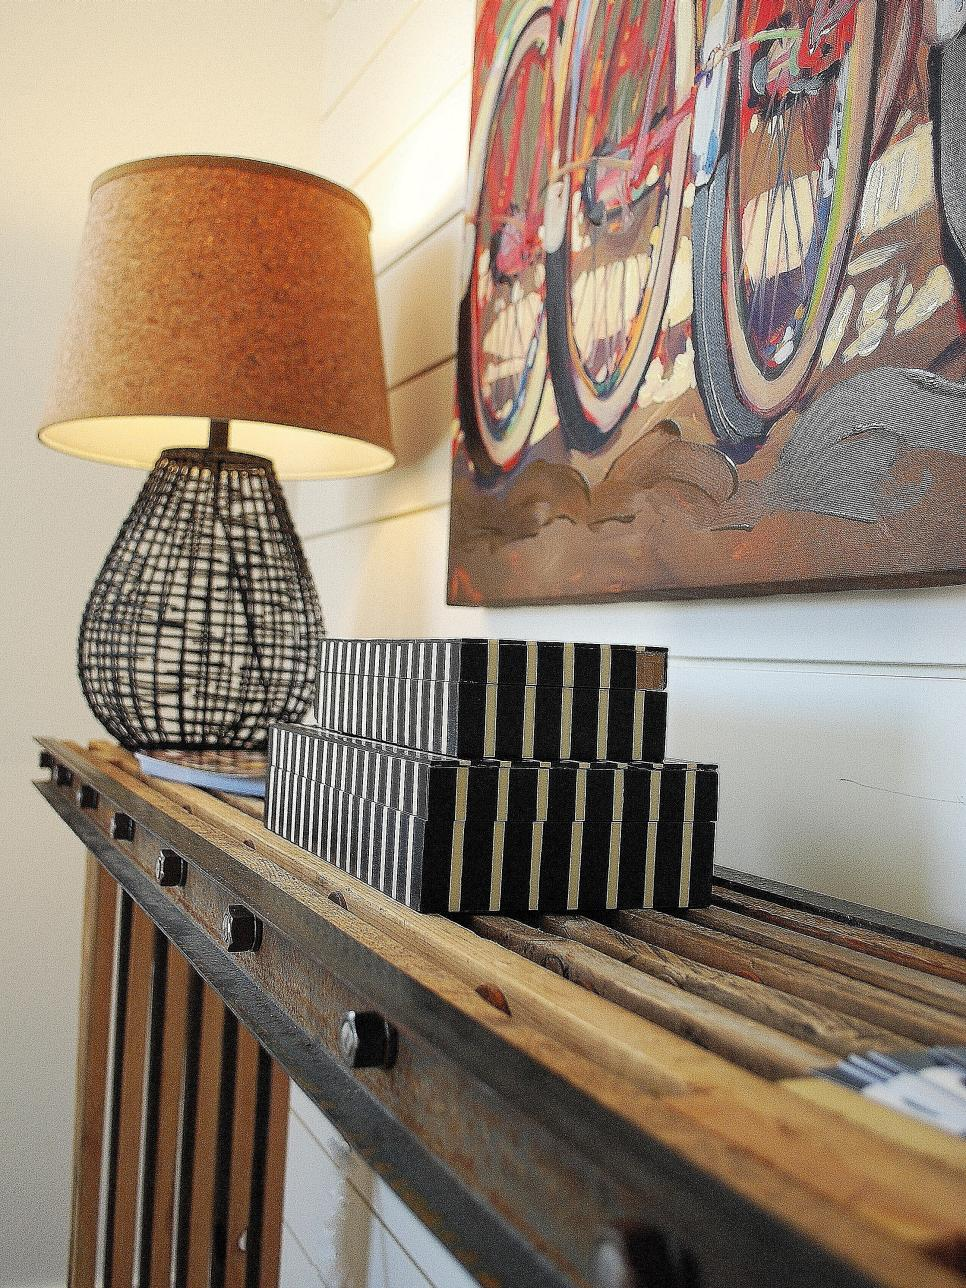 Rustic Wooden Console Table With Iron Lamp and Bicycle Art